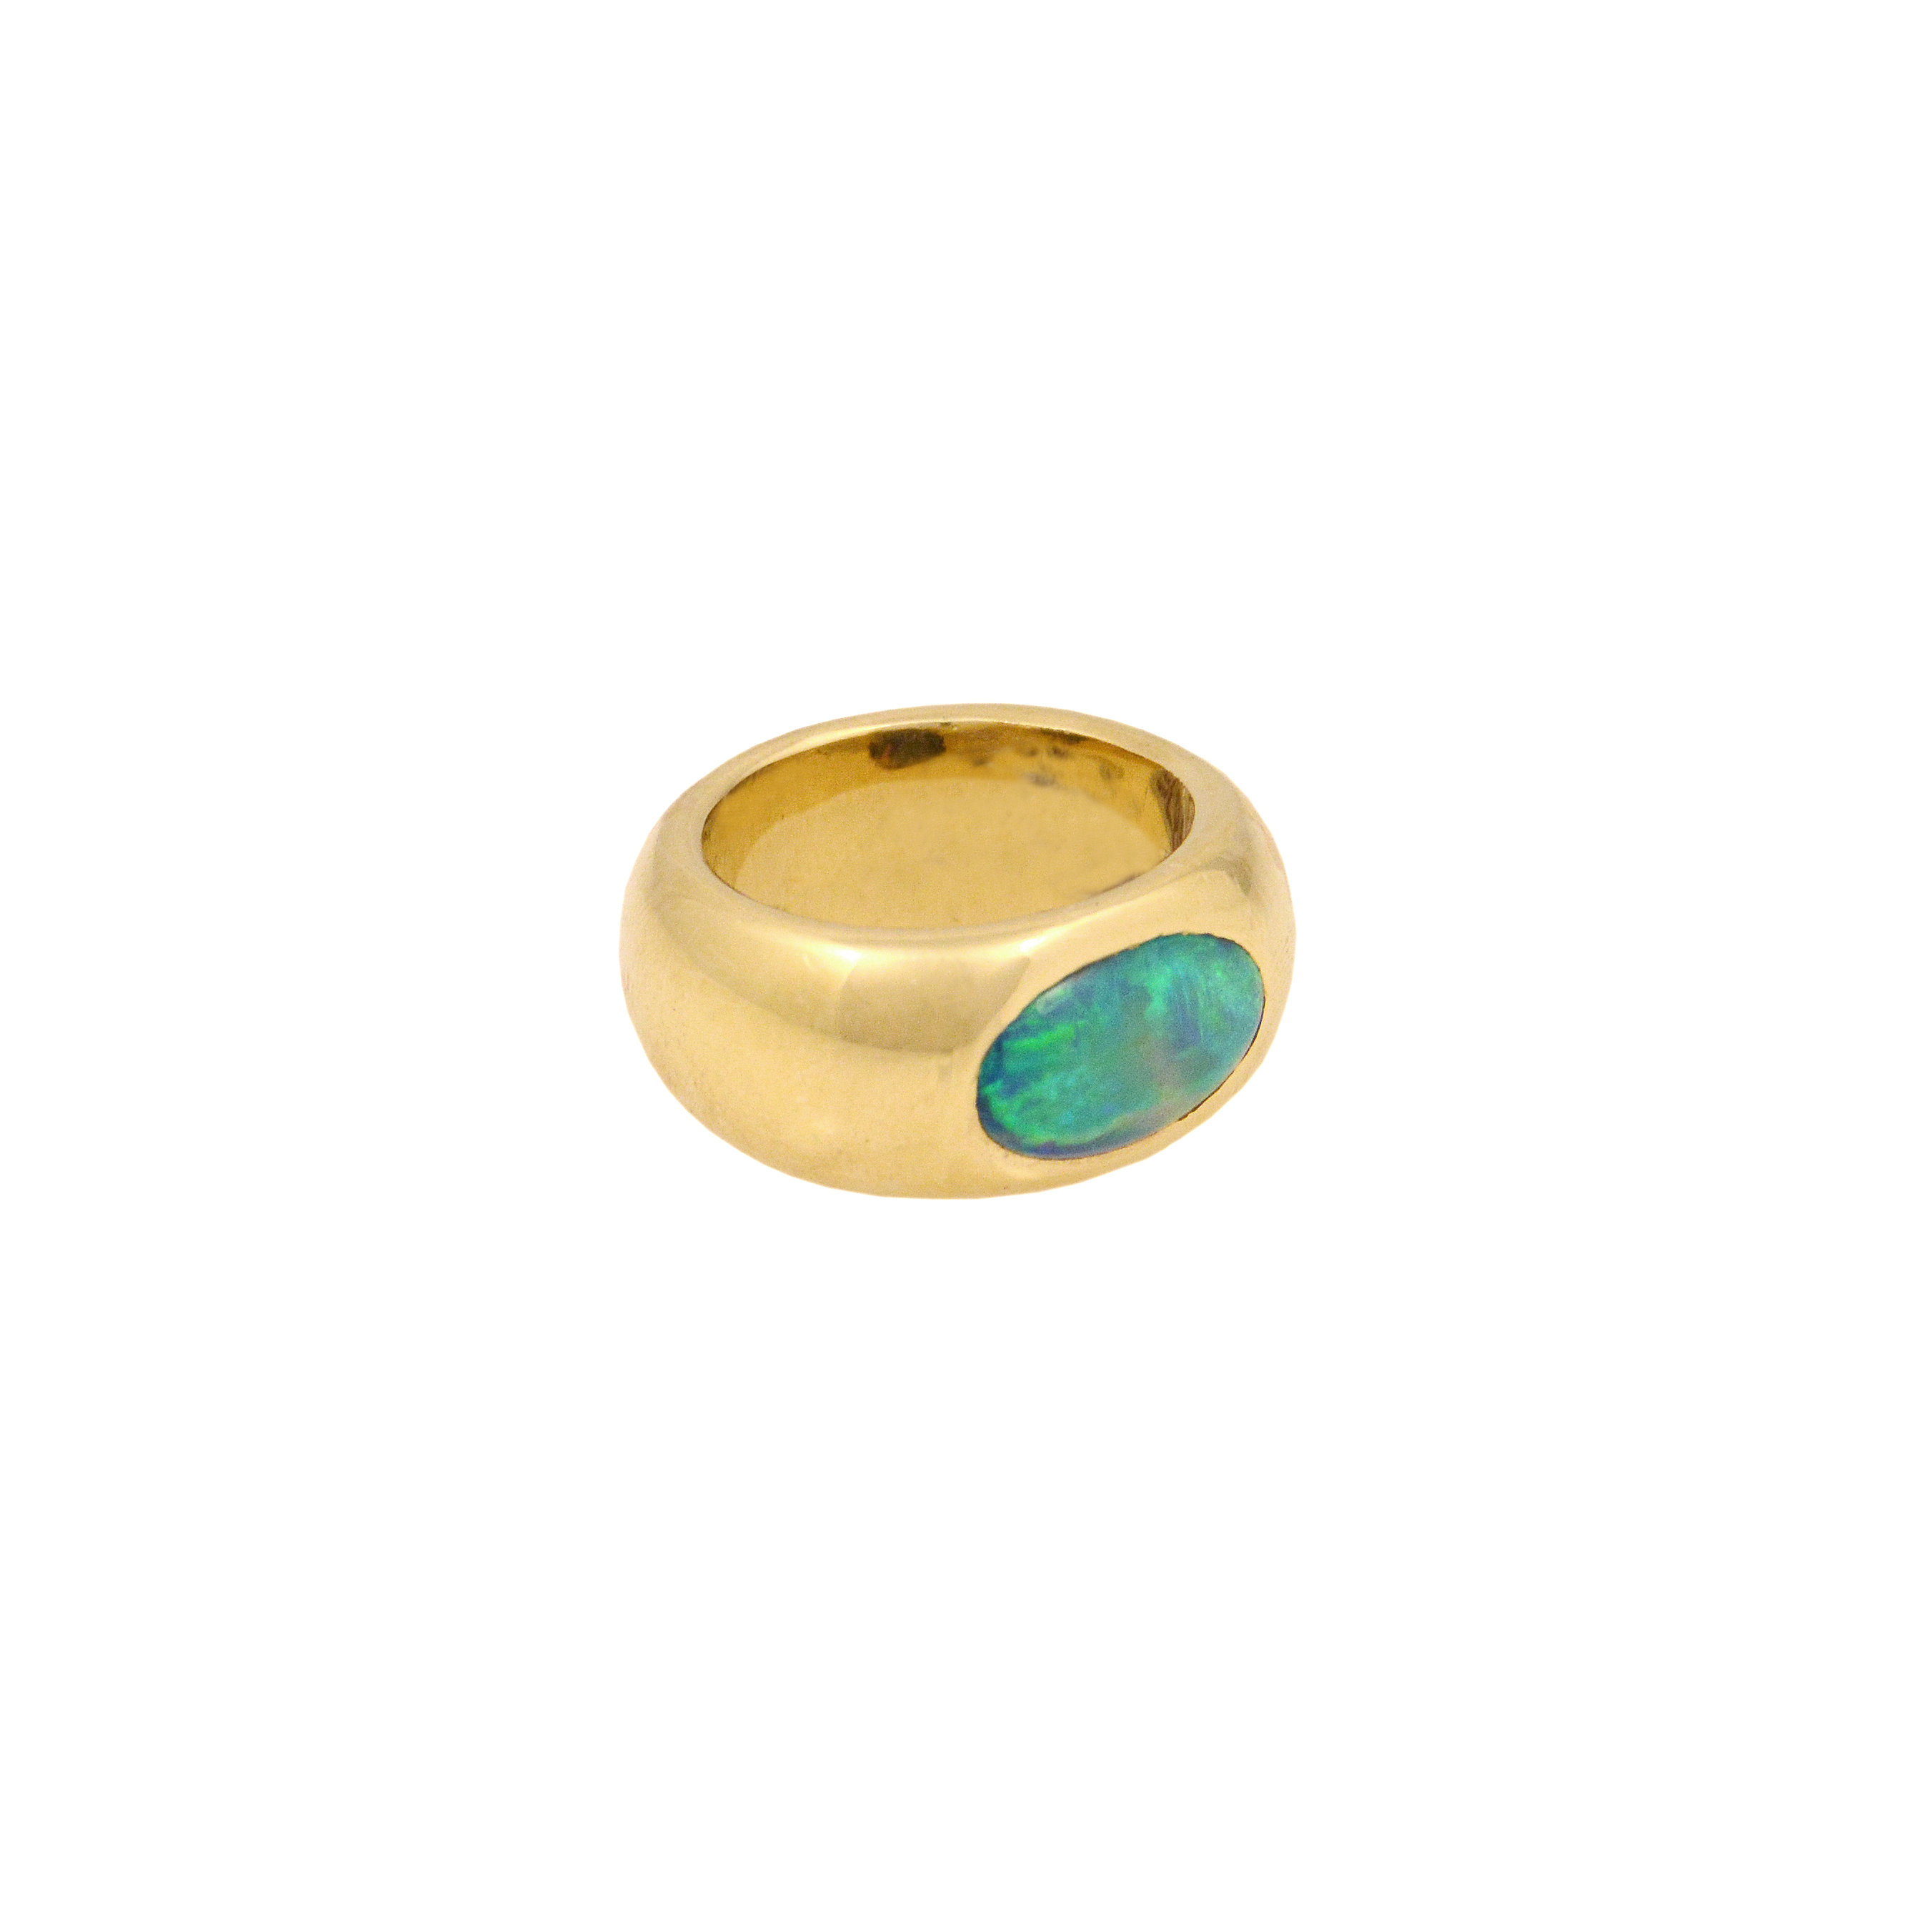 Oceanic Opal Gypsy Ring - alternate